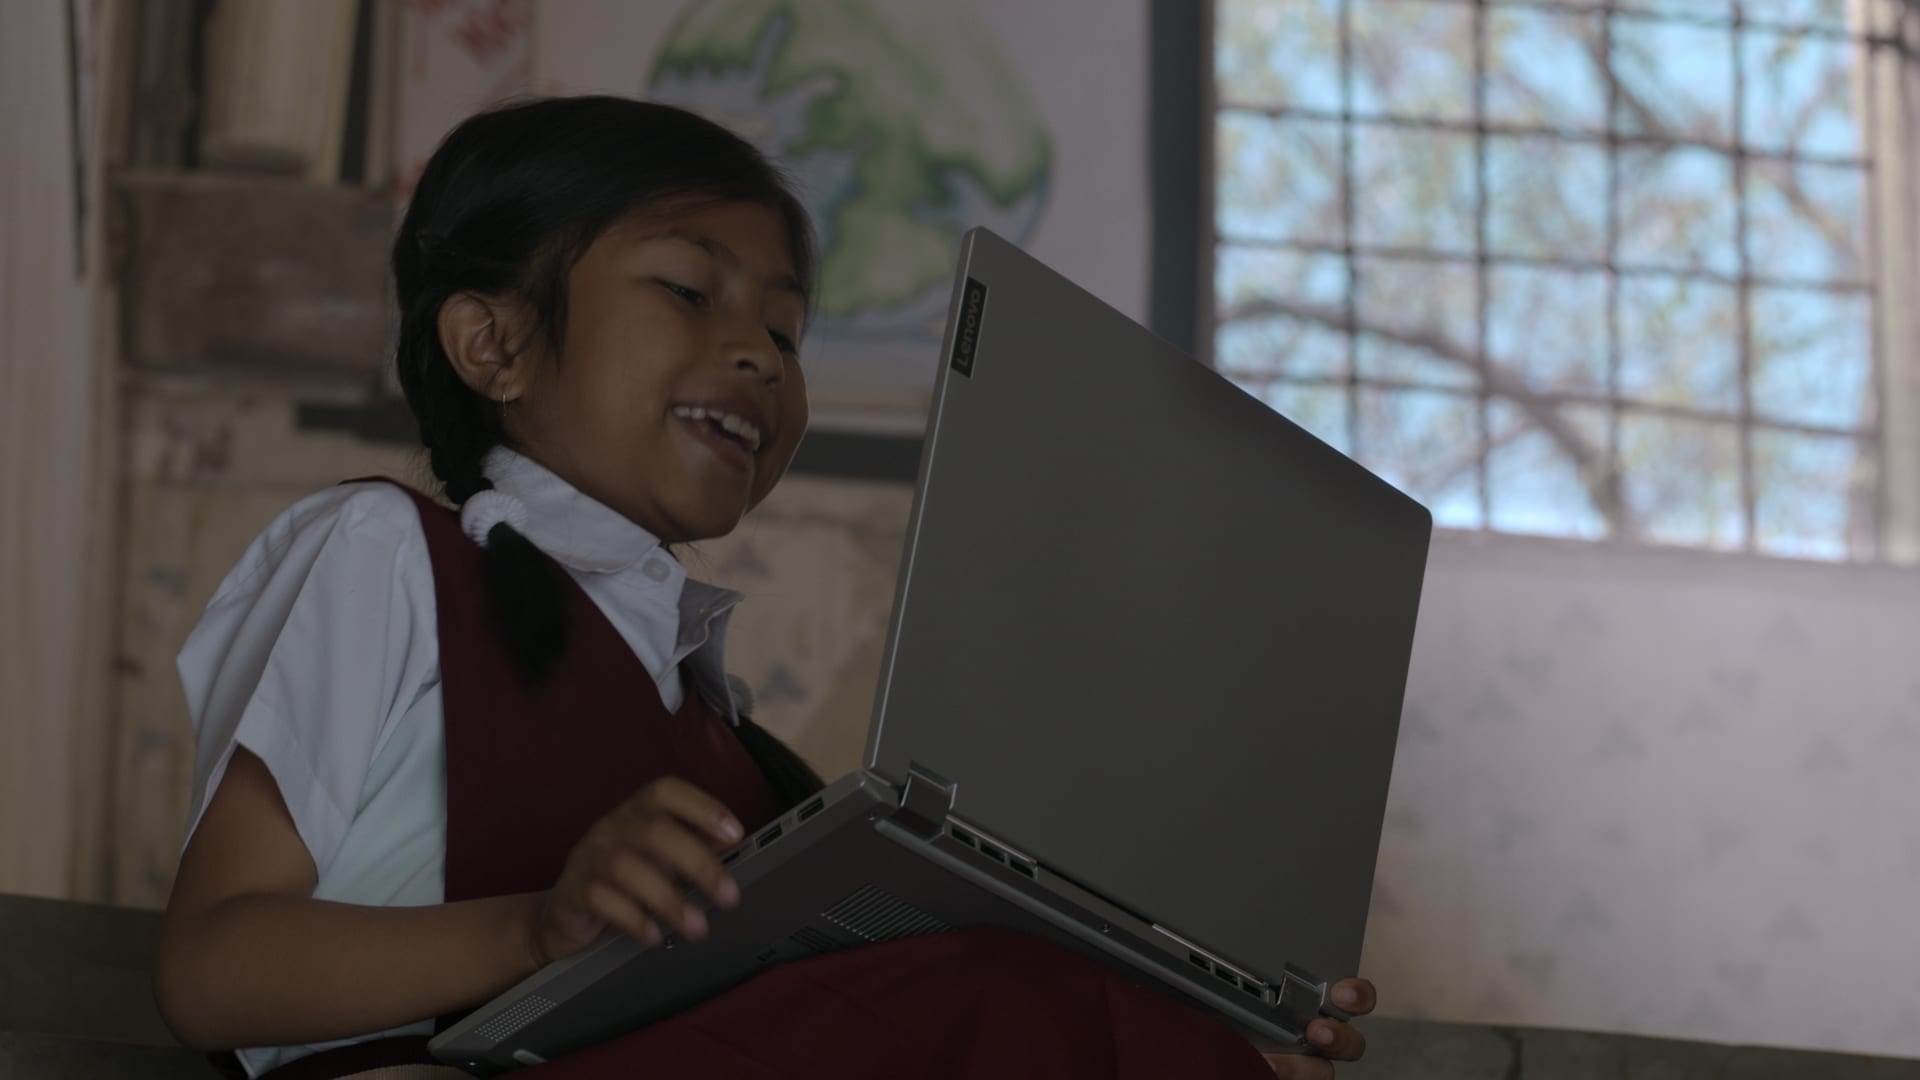 Young student with Lenovo laptop, smiling toward the screen